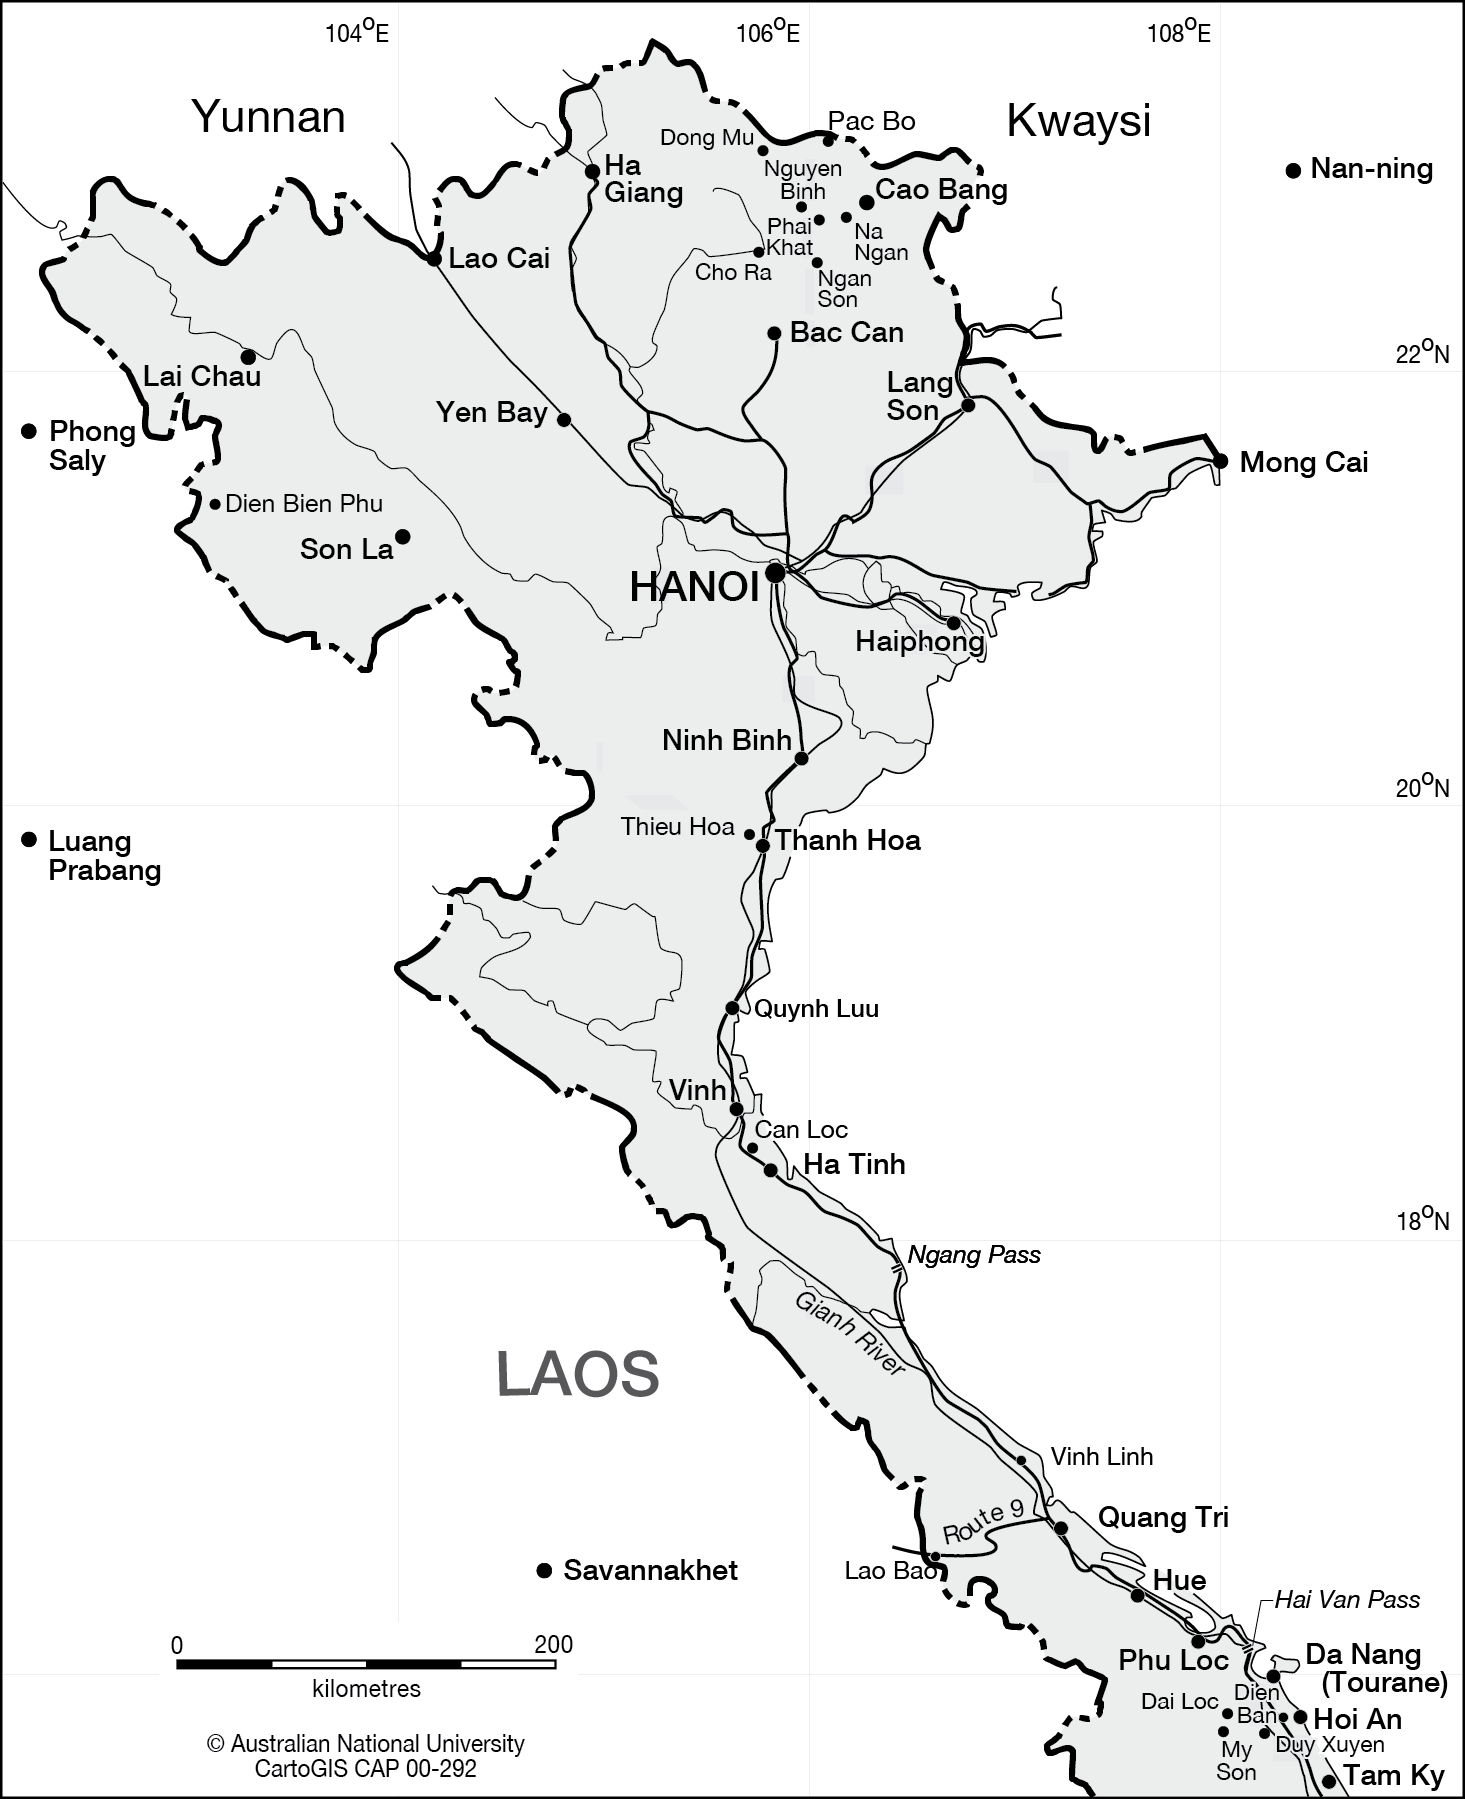 Northern Vietnam Map.Northern Vietnam Cartogis Services Maps Online Anu